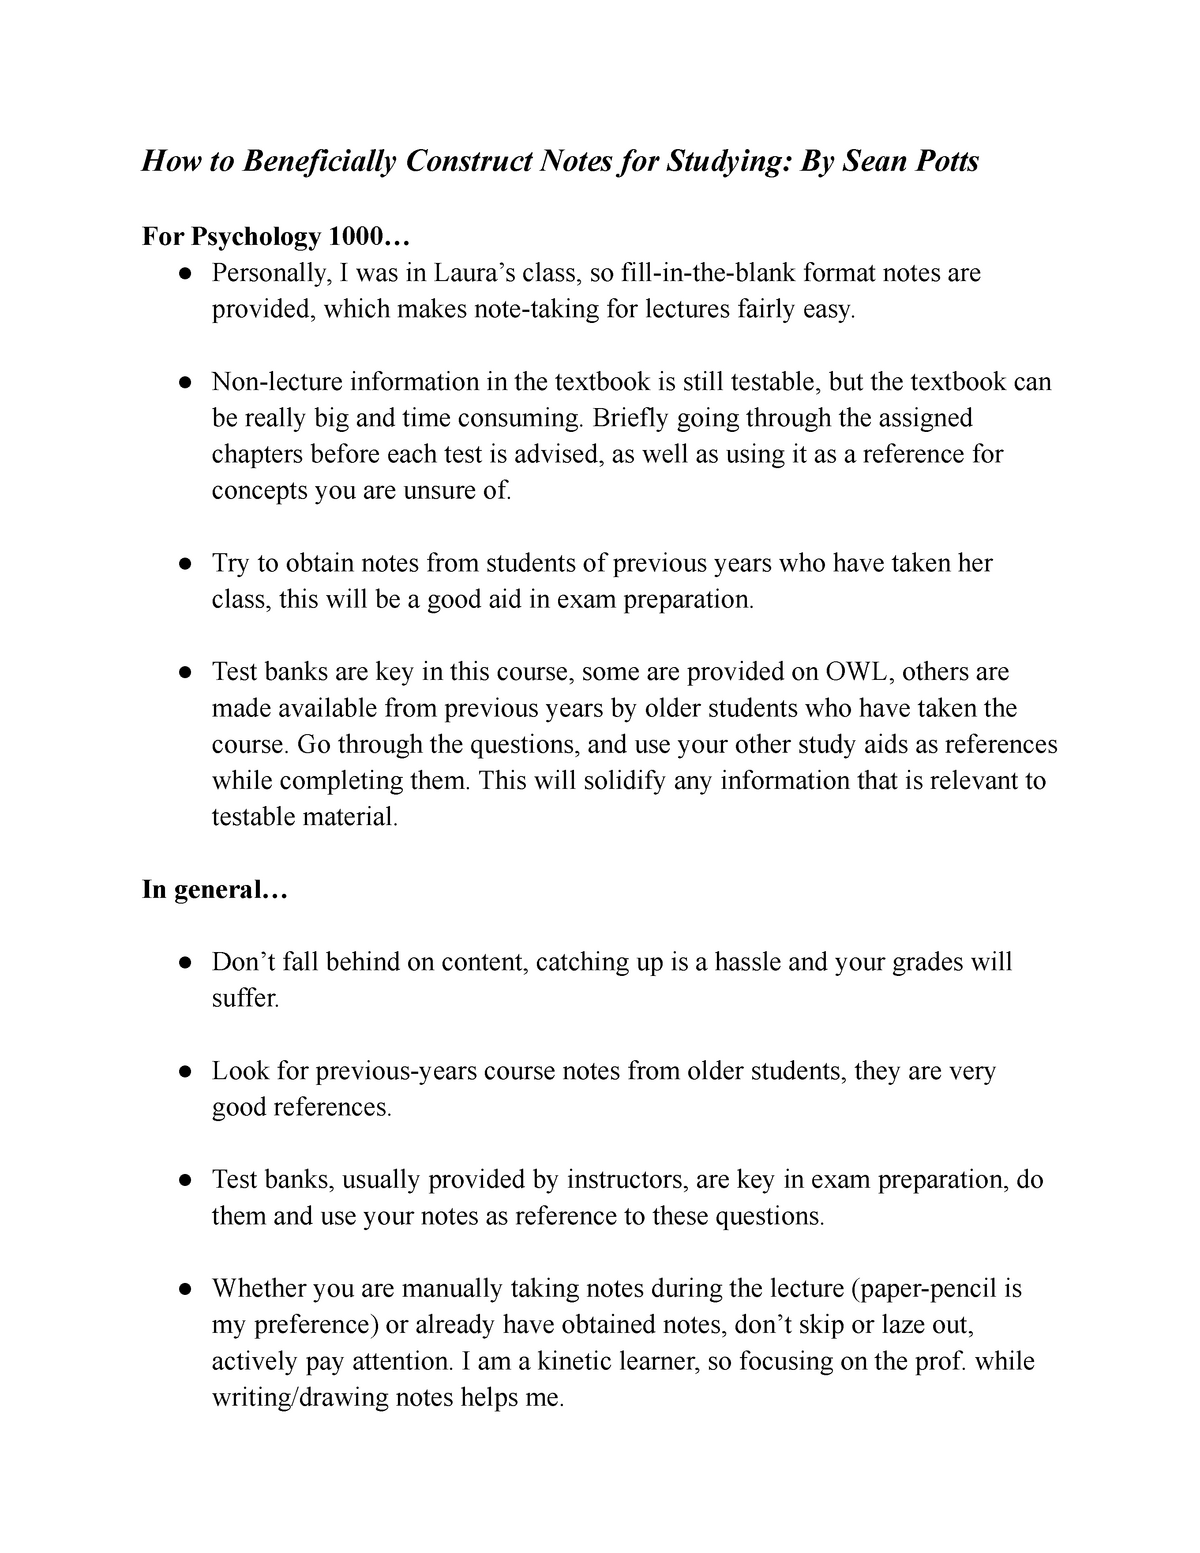 Note-taking tips - Lecture notes Applies to all - UWO - StuDocu